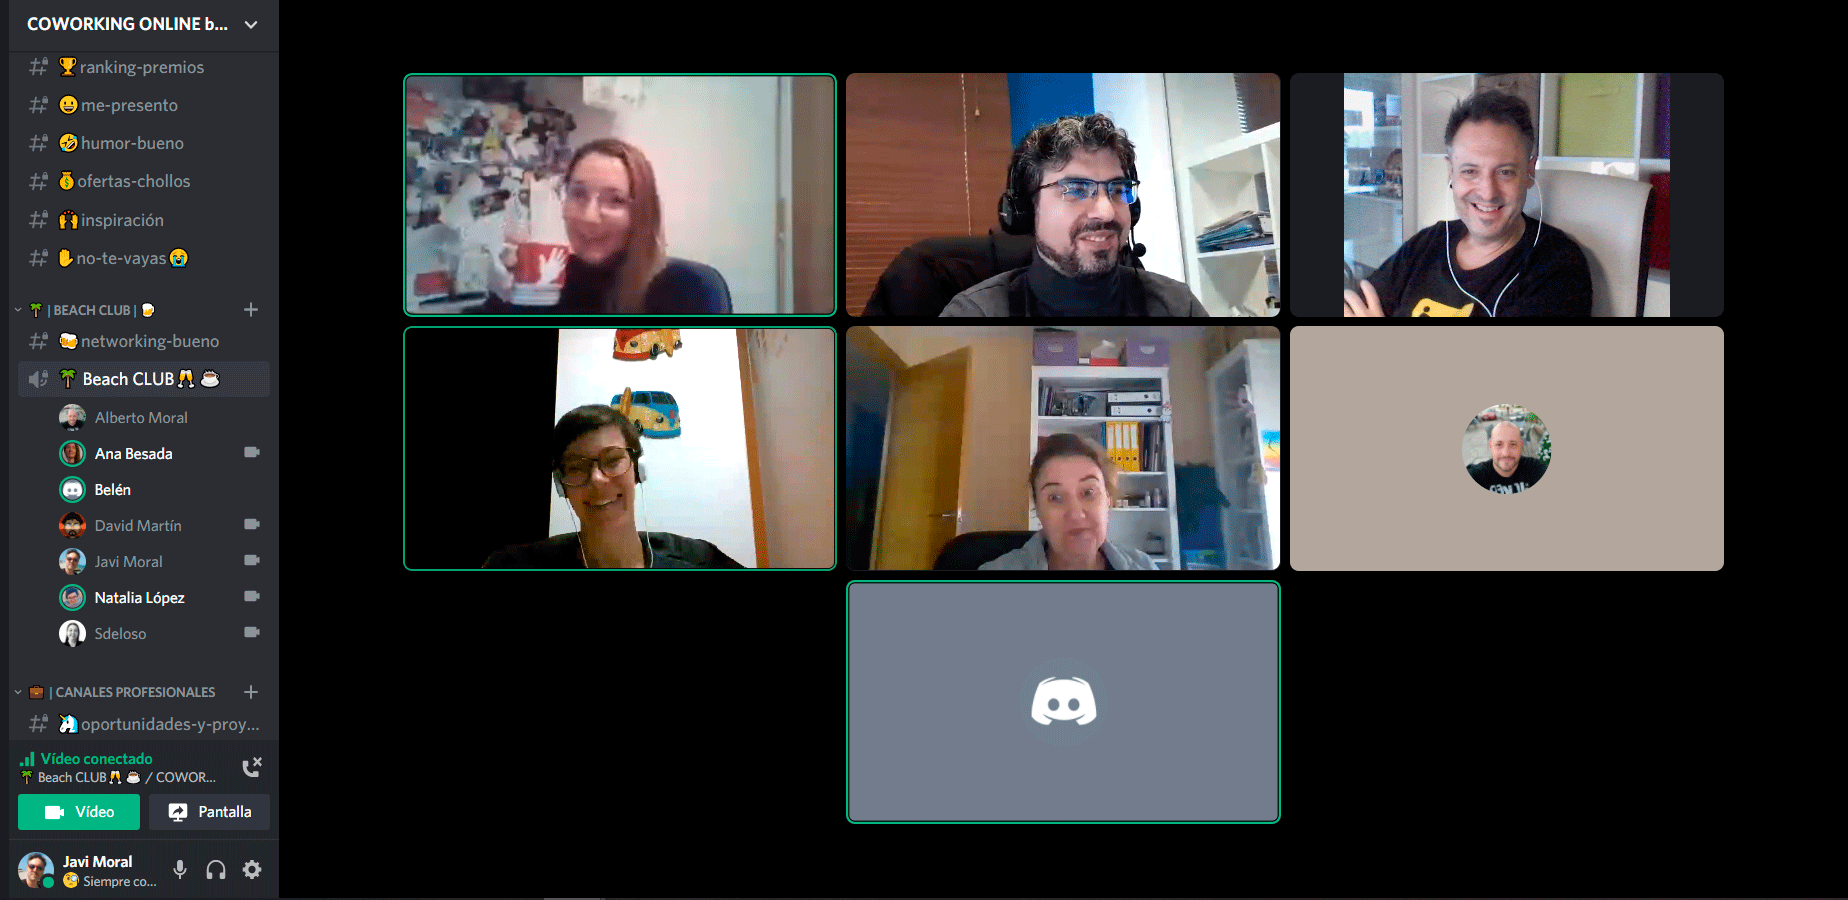 coworking-online-chat